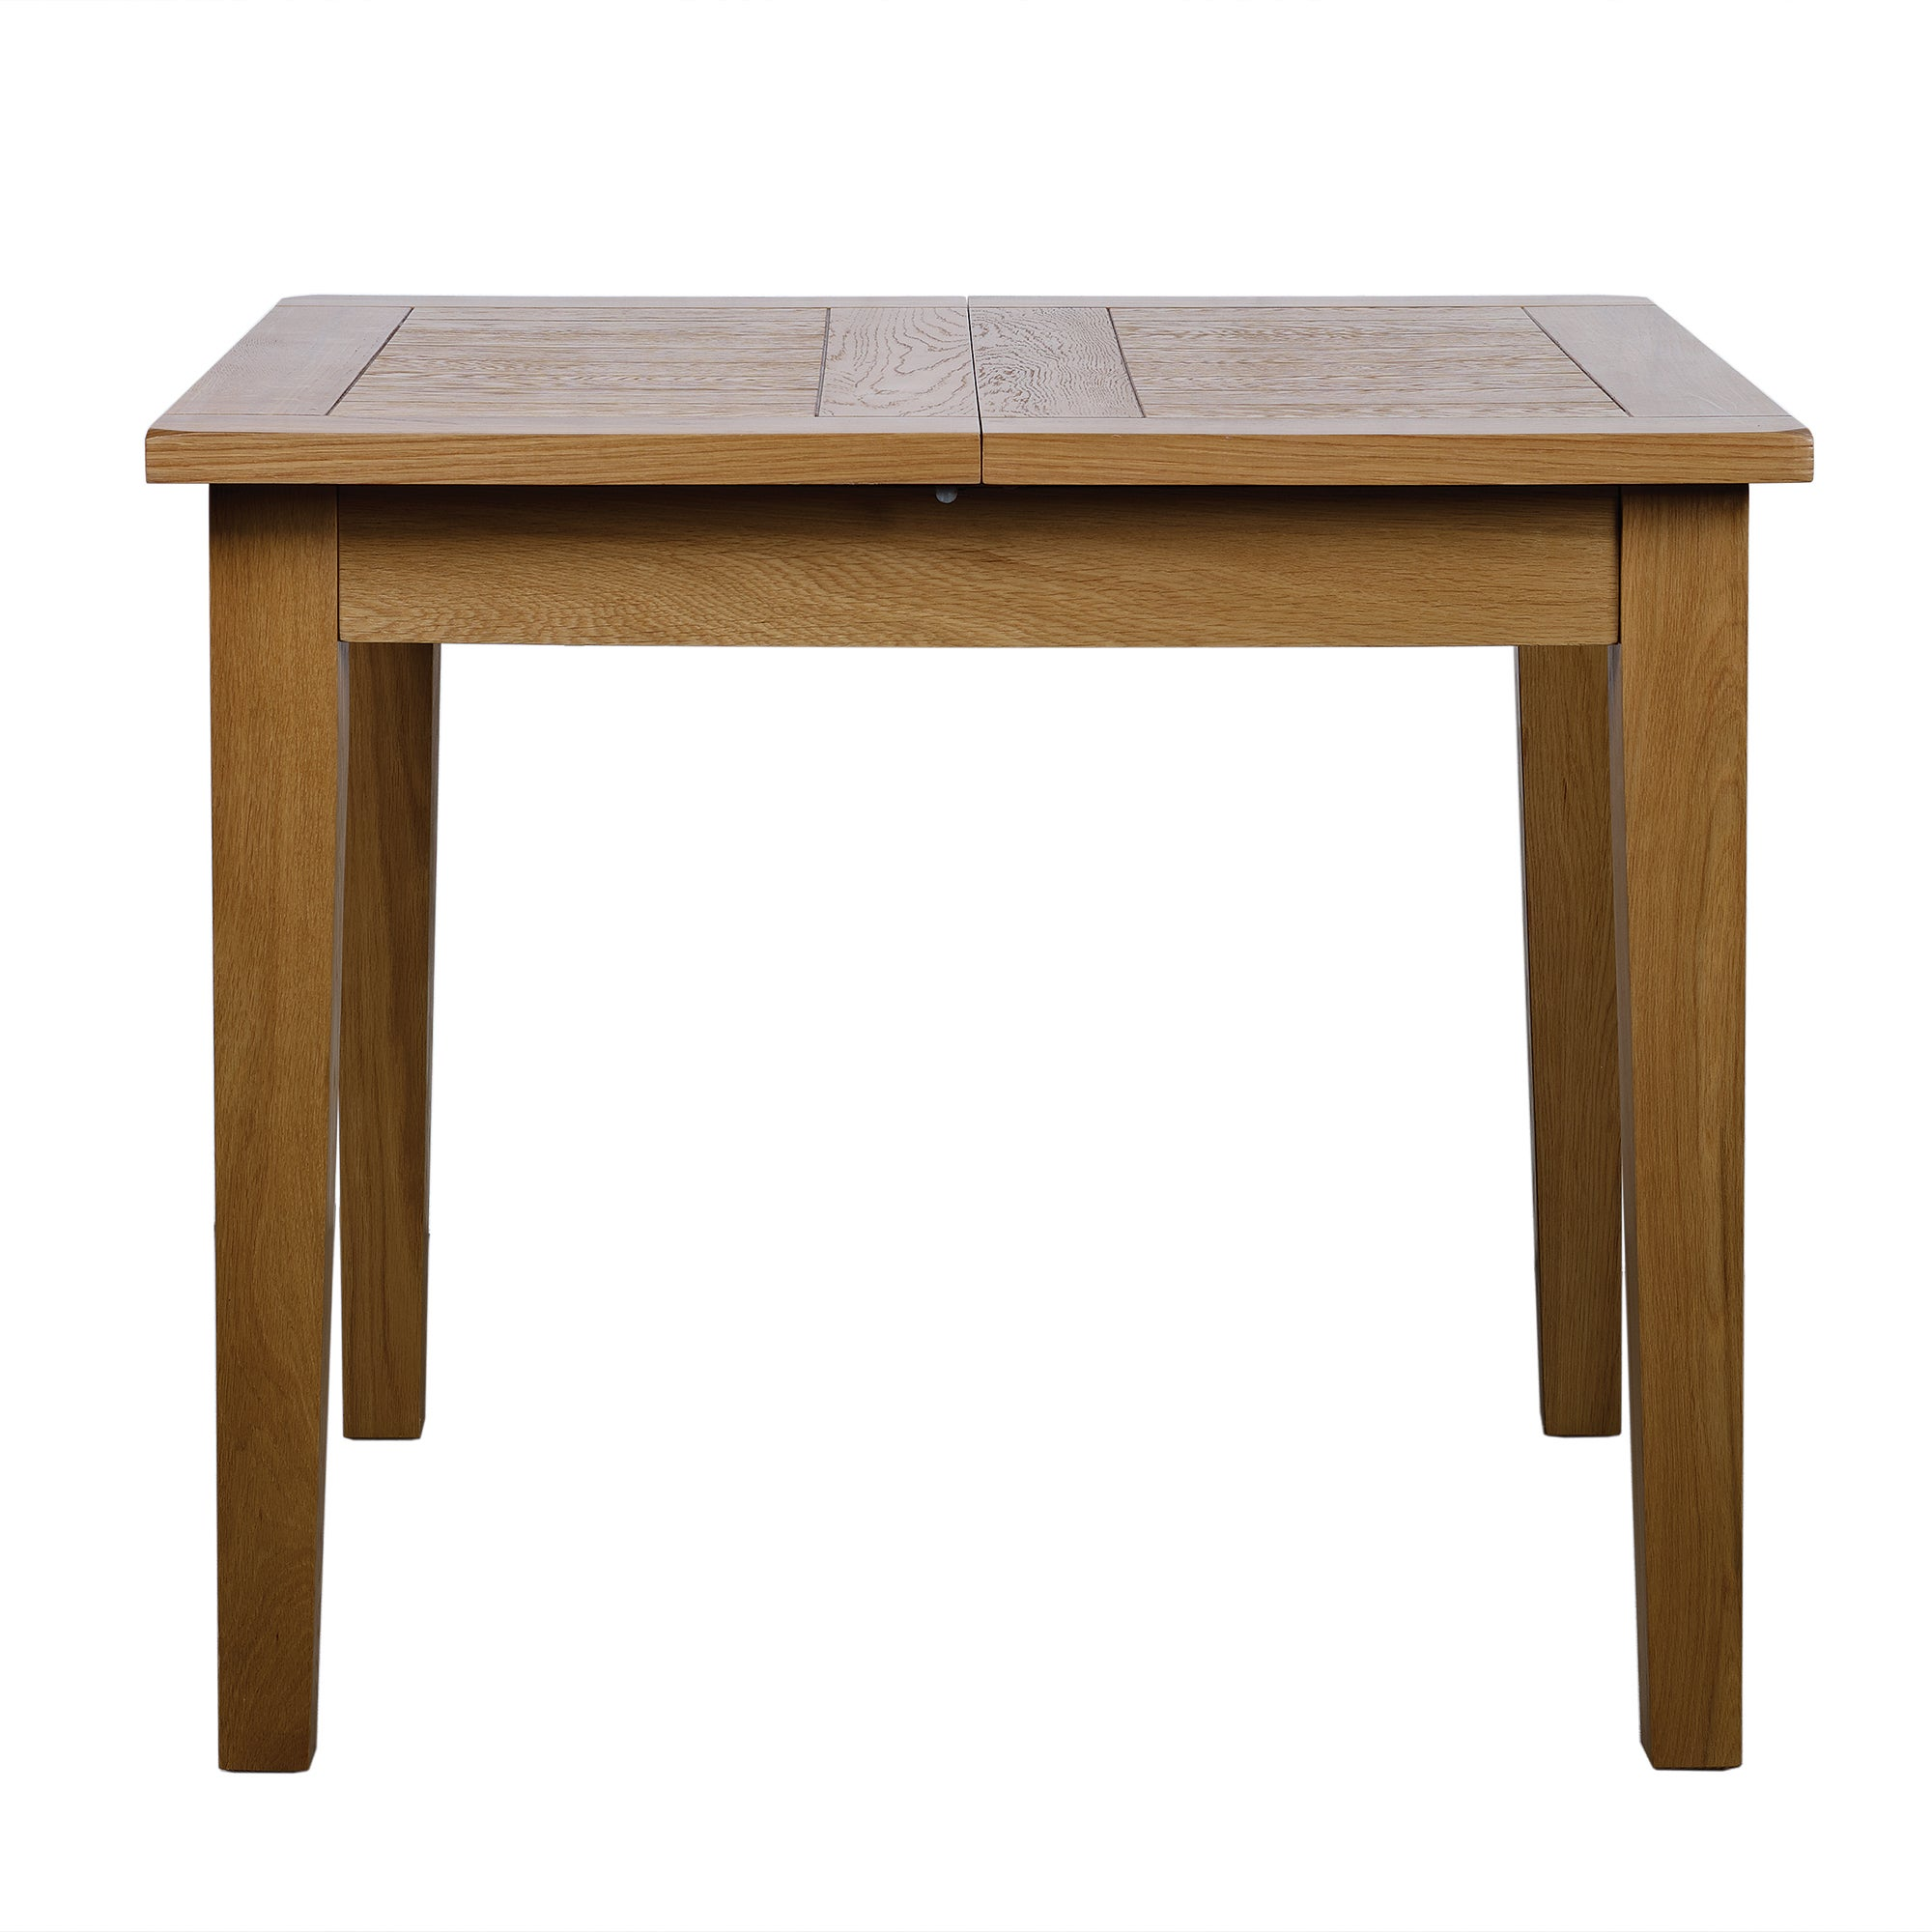 Buy cheap Solid oak extendable dining table compare  : 1000037143main Desk Chairs <strong>for Women</strong> from rti.priceinspector.co.uk size 550 x 550 jpeg 25kB